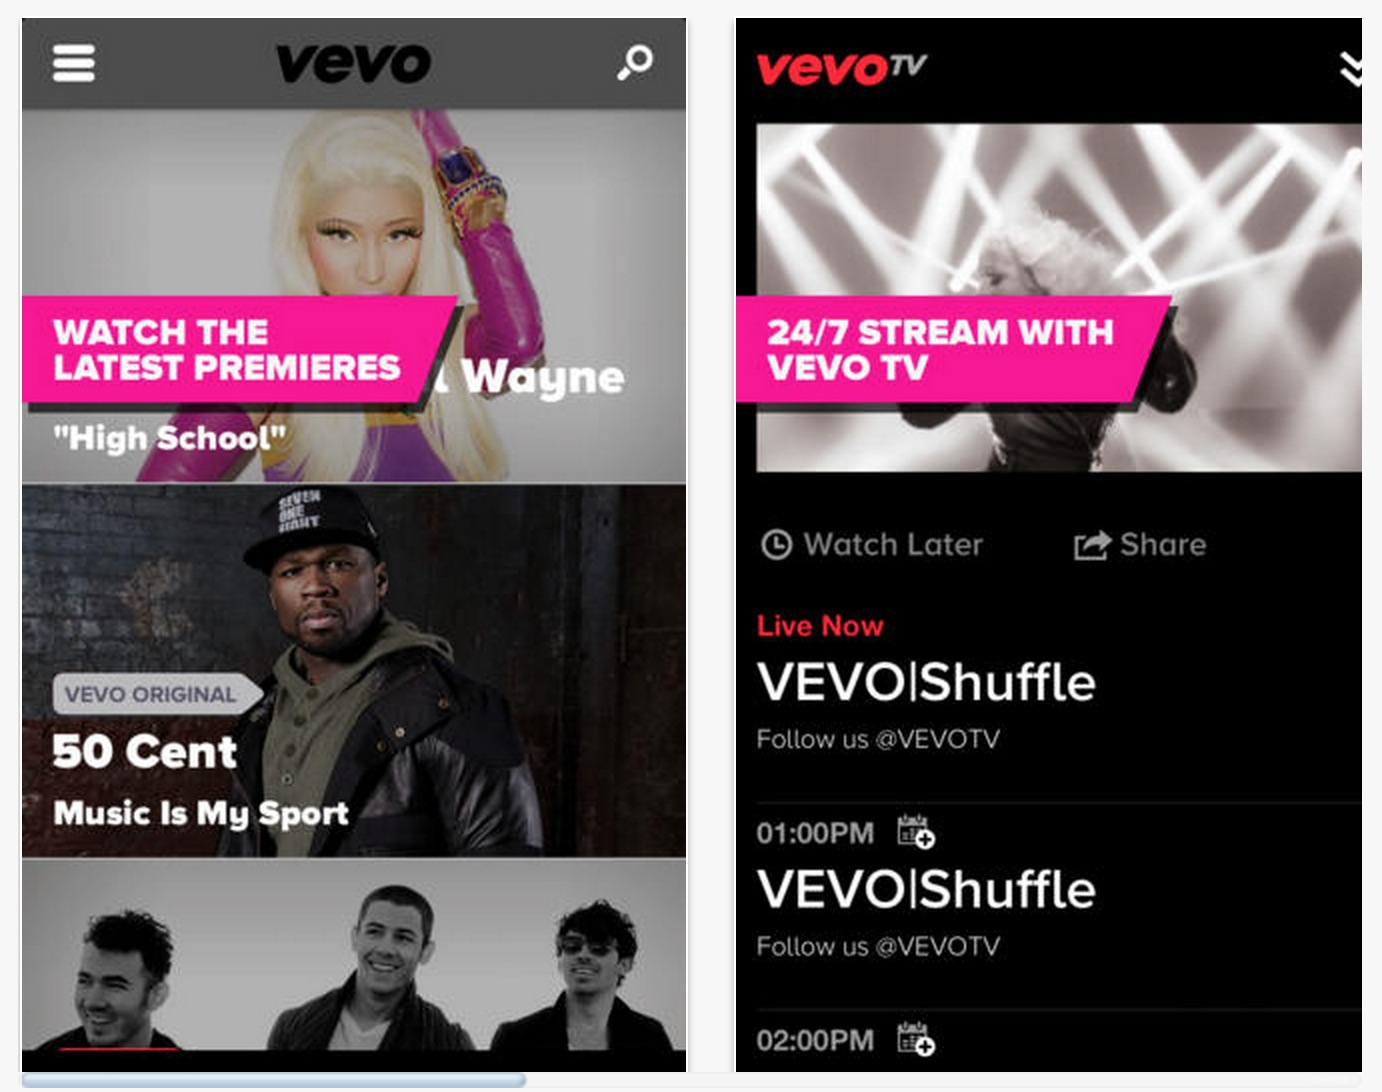 VEVO Adds Airplay Support to iOS Apps, Stream to Your Apple TV!